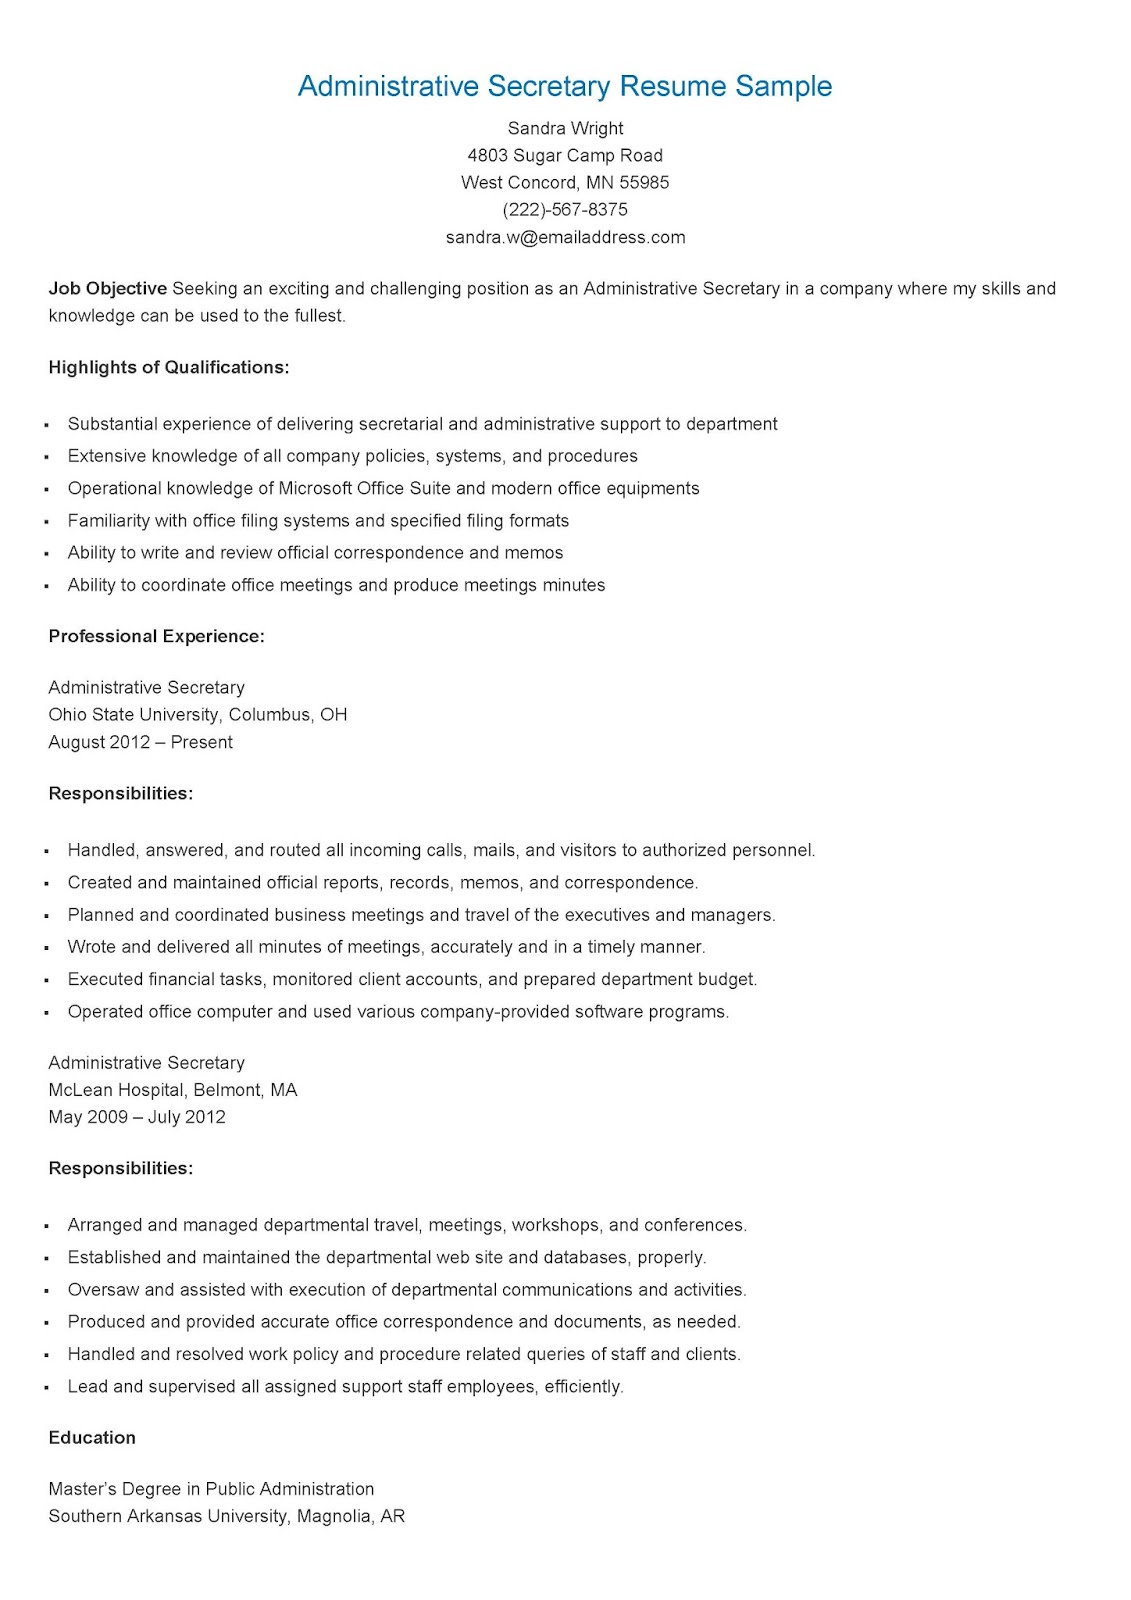 Resume Sample For Secretary Resume Samples Administrative Secretary Resume Sample